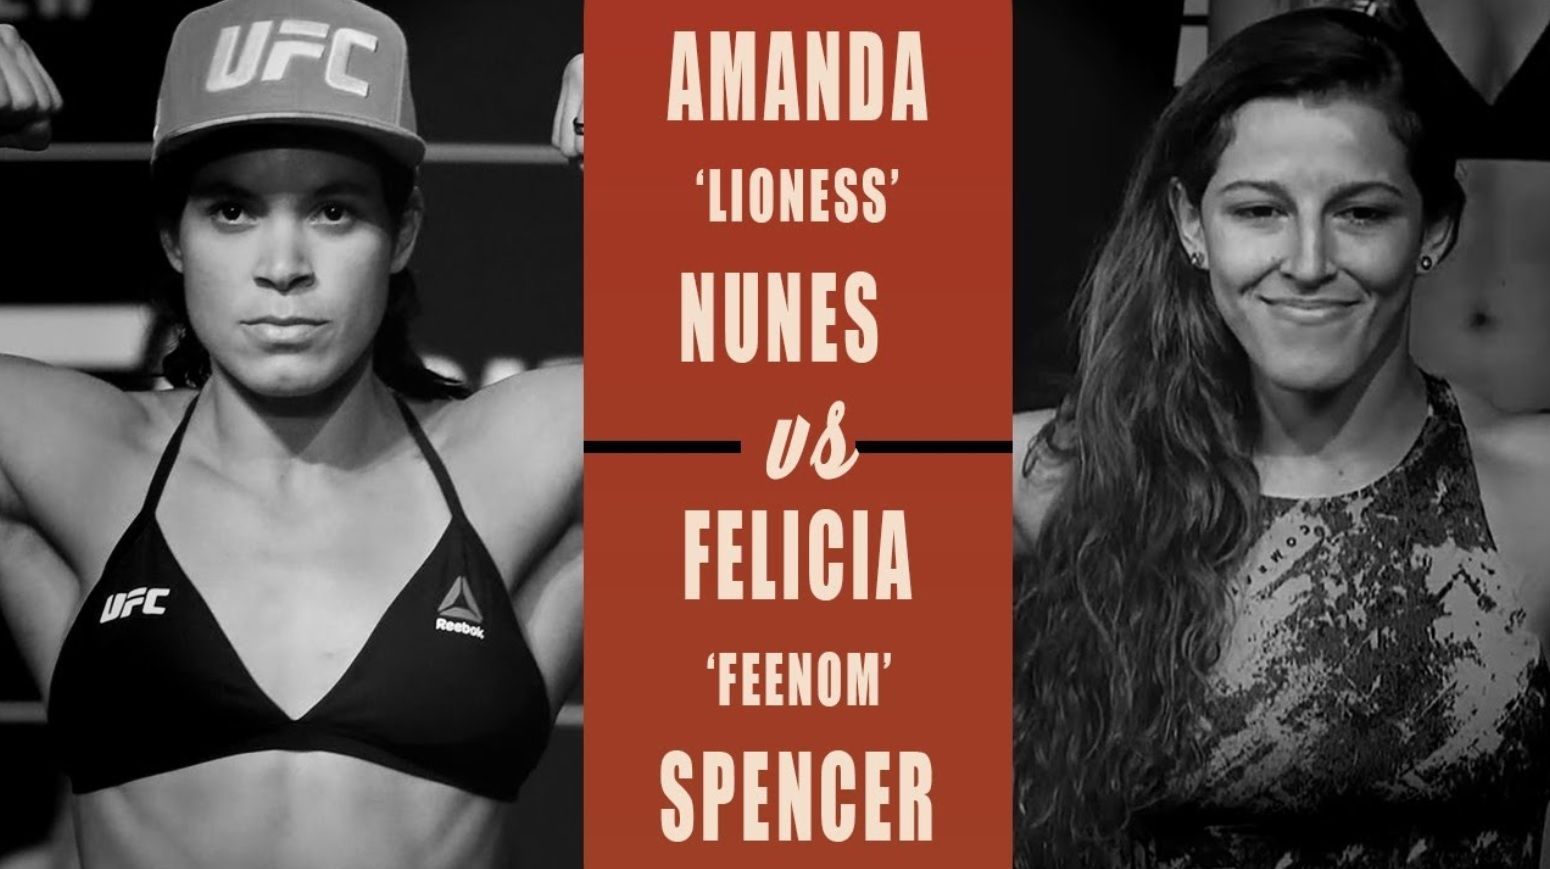 Light at the End of the Tunnel for UFC: Nunes-Spencer Preview